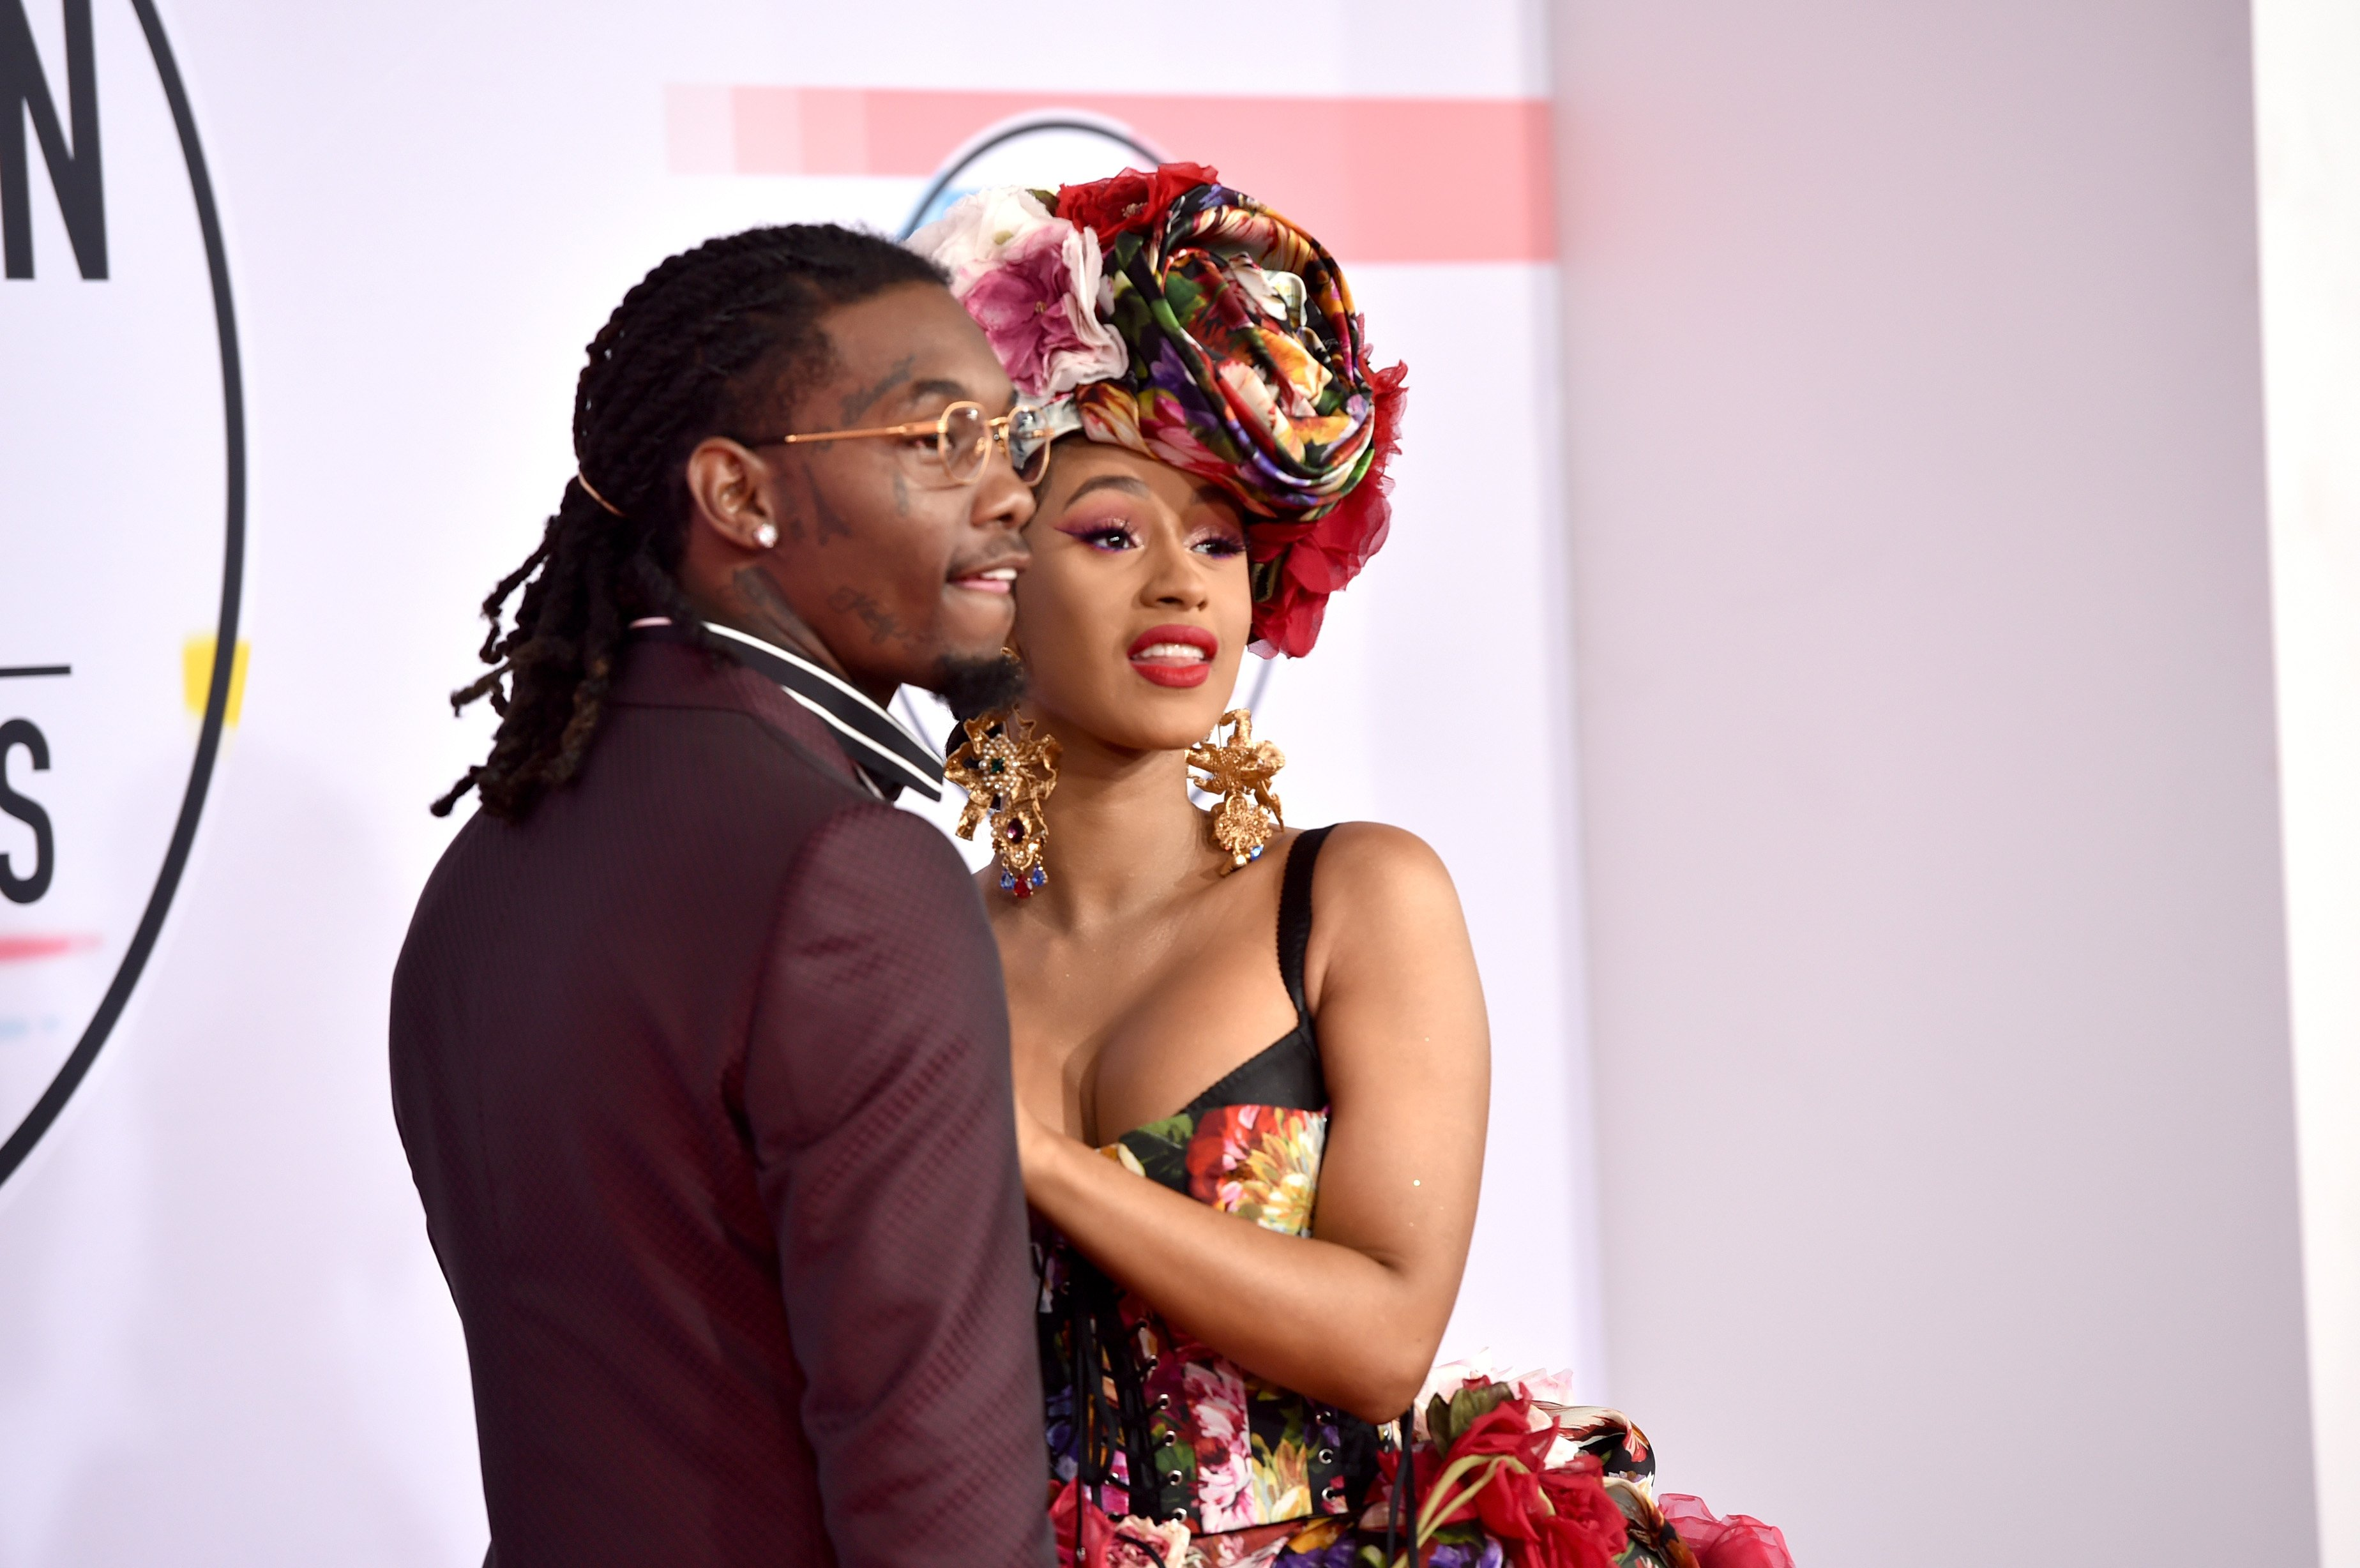 Offset and Cardi B attend the 2018 American Music Awards in Los Angeles on October 9, 2018   Photo: Getty Images